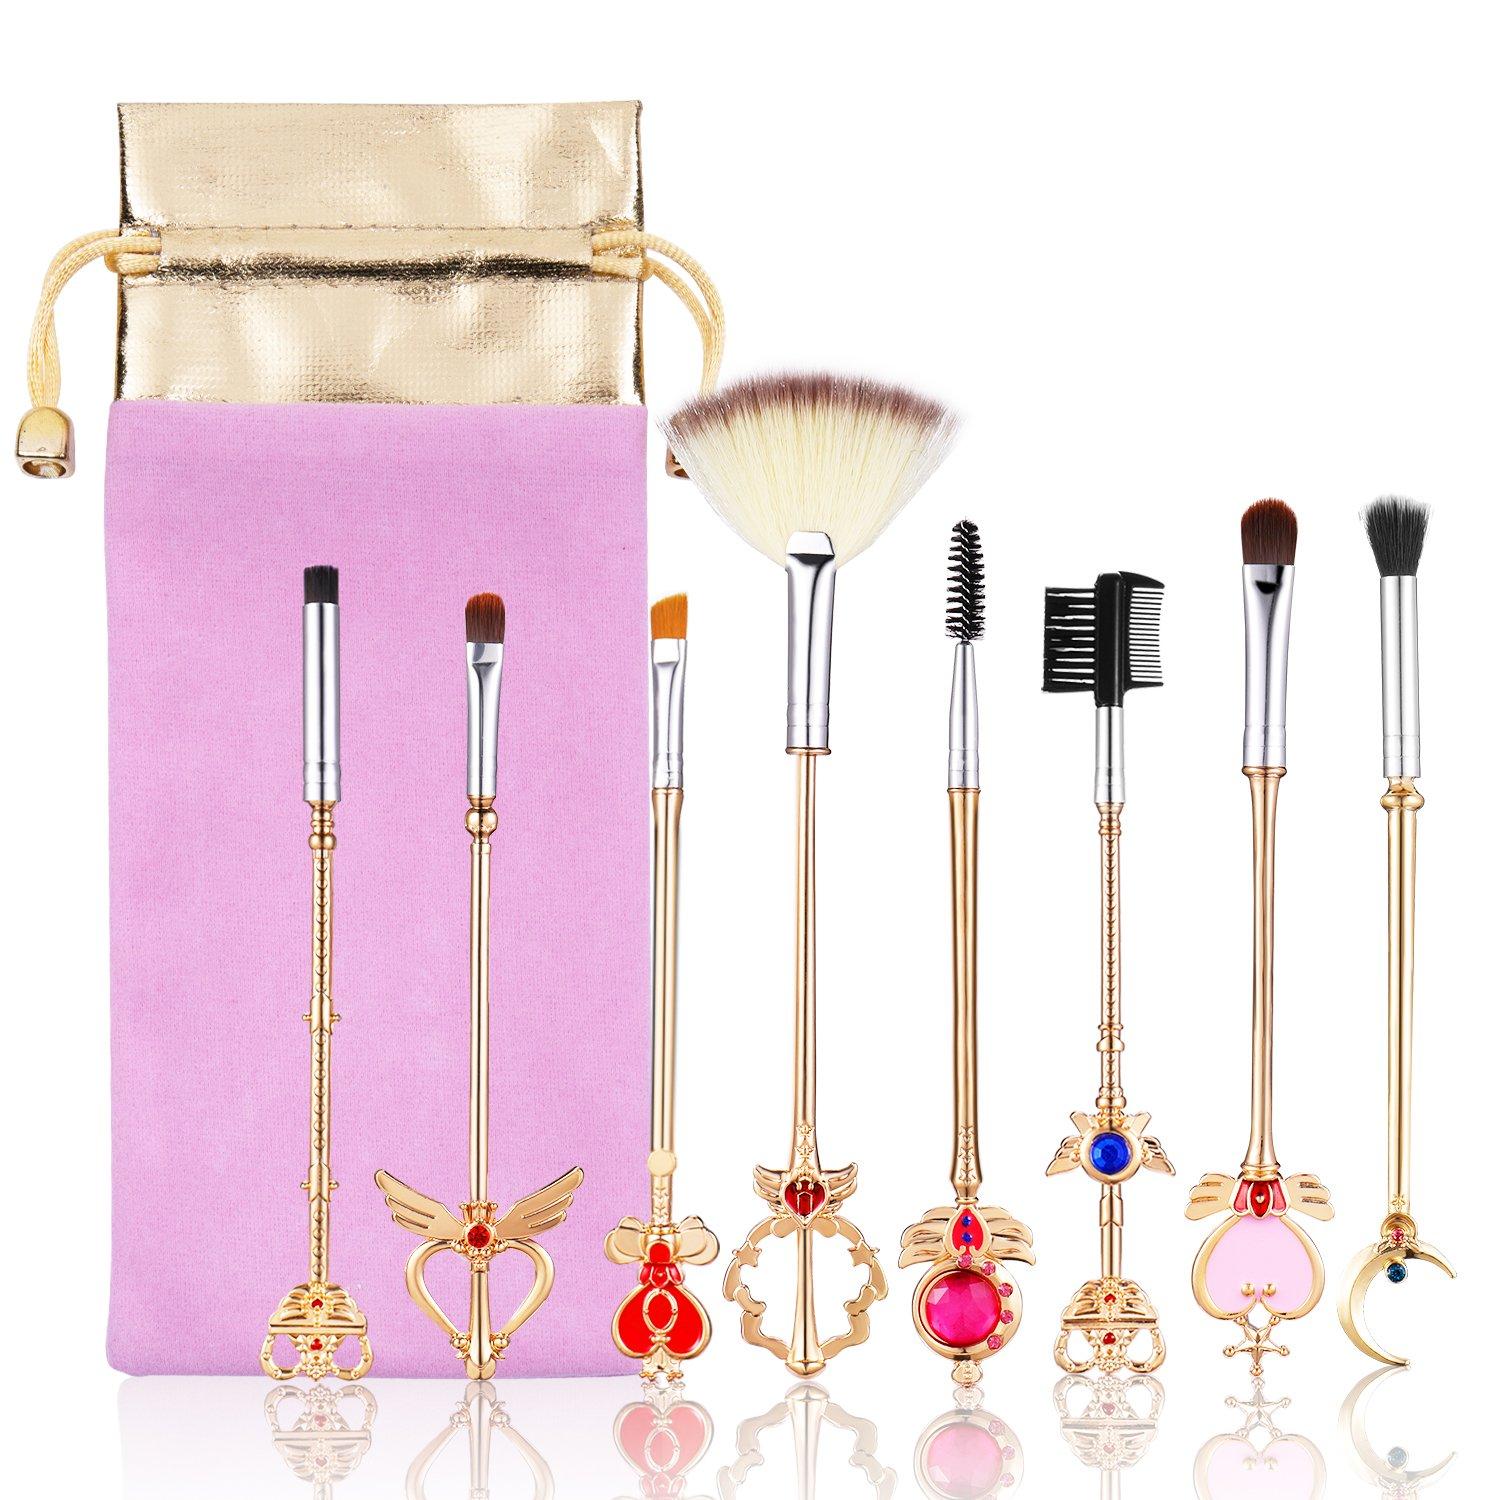 Beauty Warrior 8 Pcs Makeup Brushes Set Foundation Contour Powder Eye Shadow Eyeliner Lip Blending Cosmetic Beauty Make Up Brushes Tools SUOCHUANG